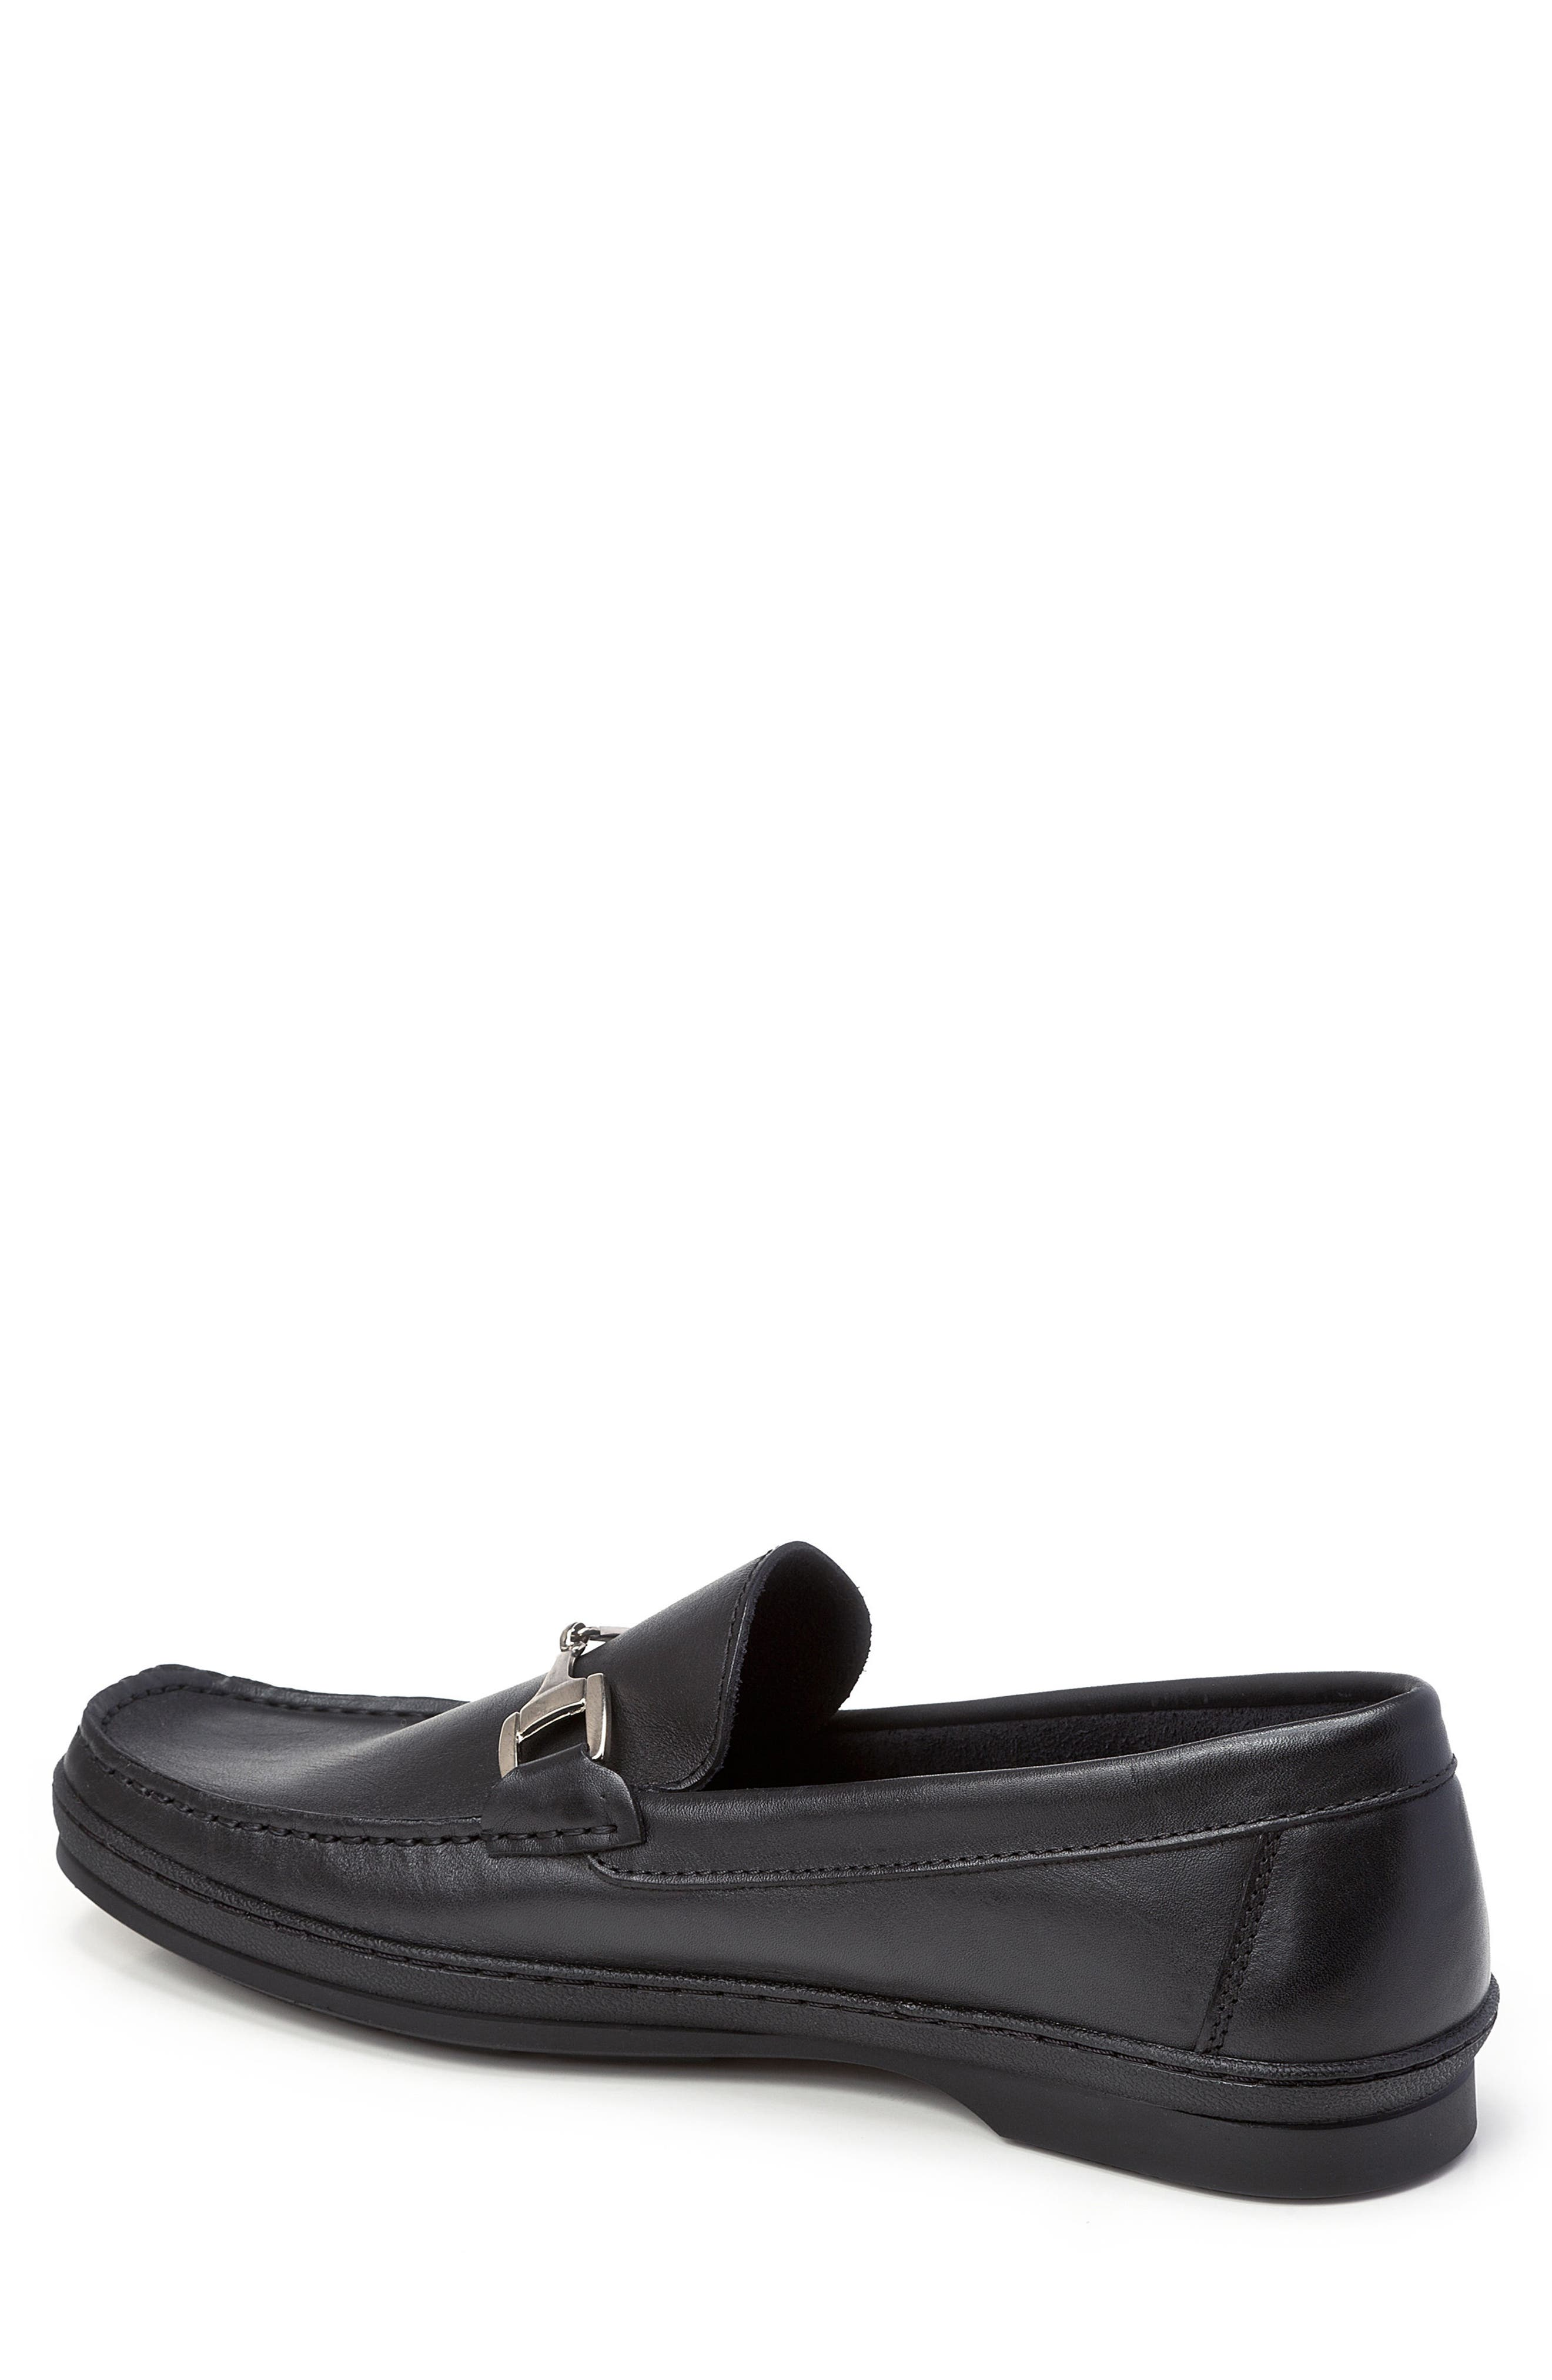 Navarro Bit Loafer,                             Alternate thumbnail 2, color,                             001